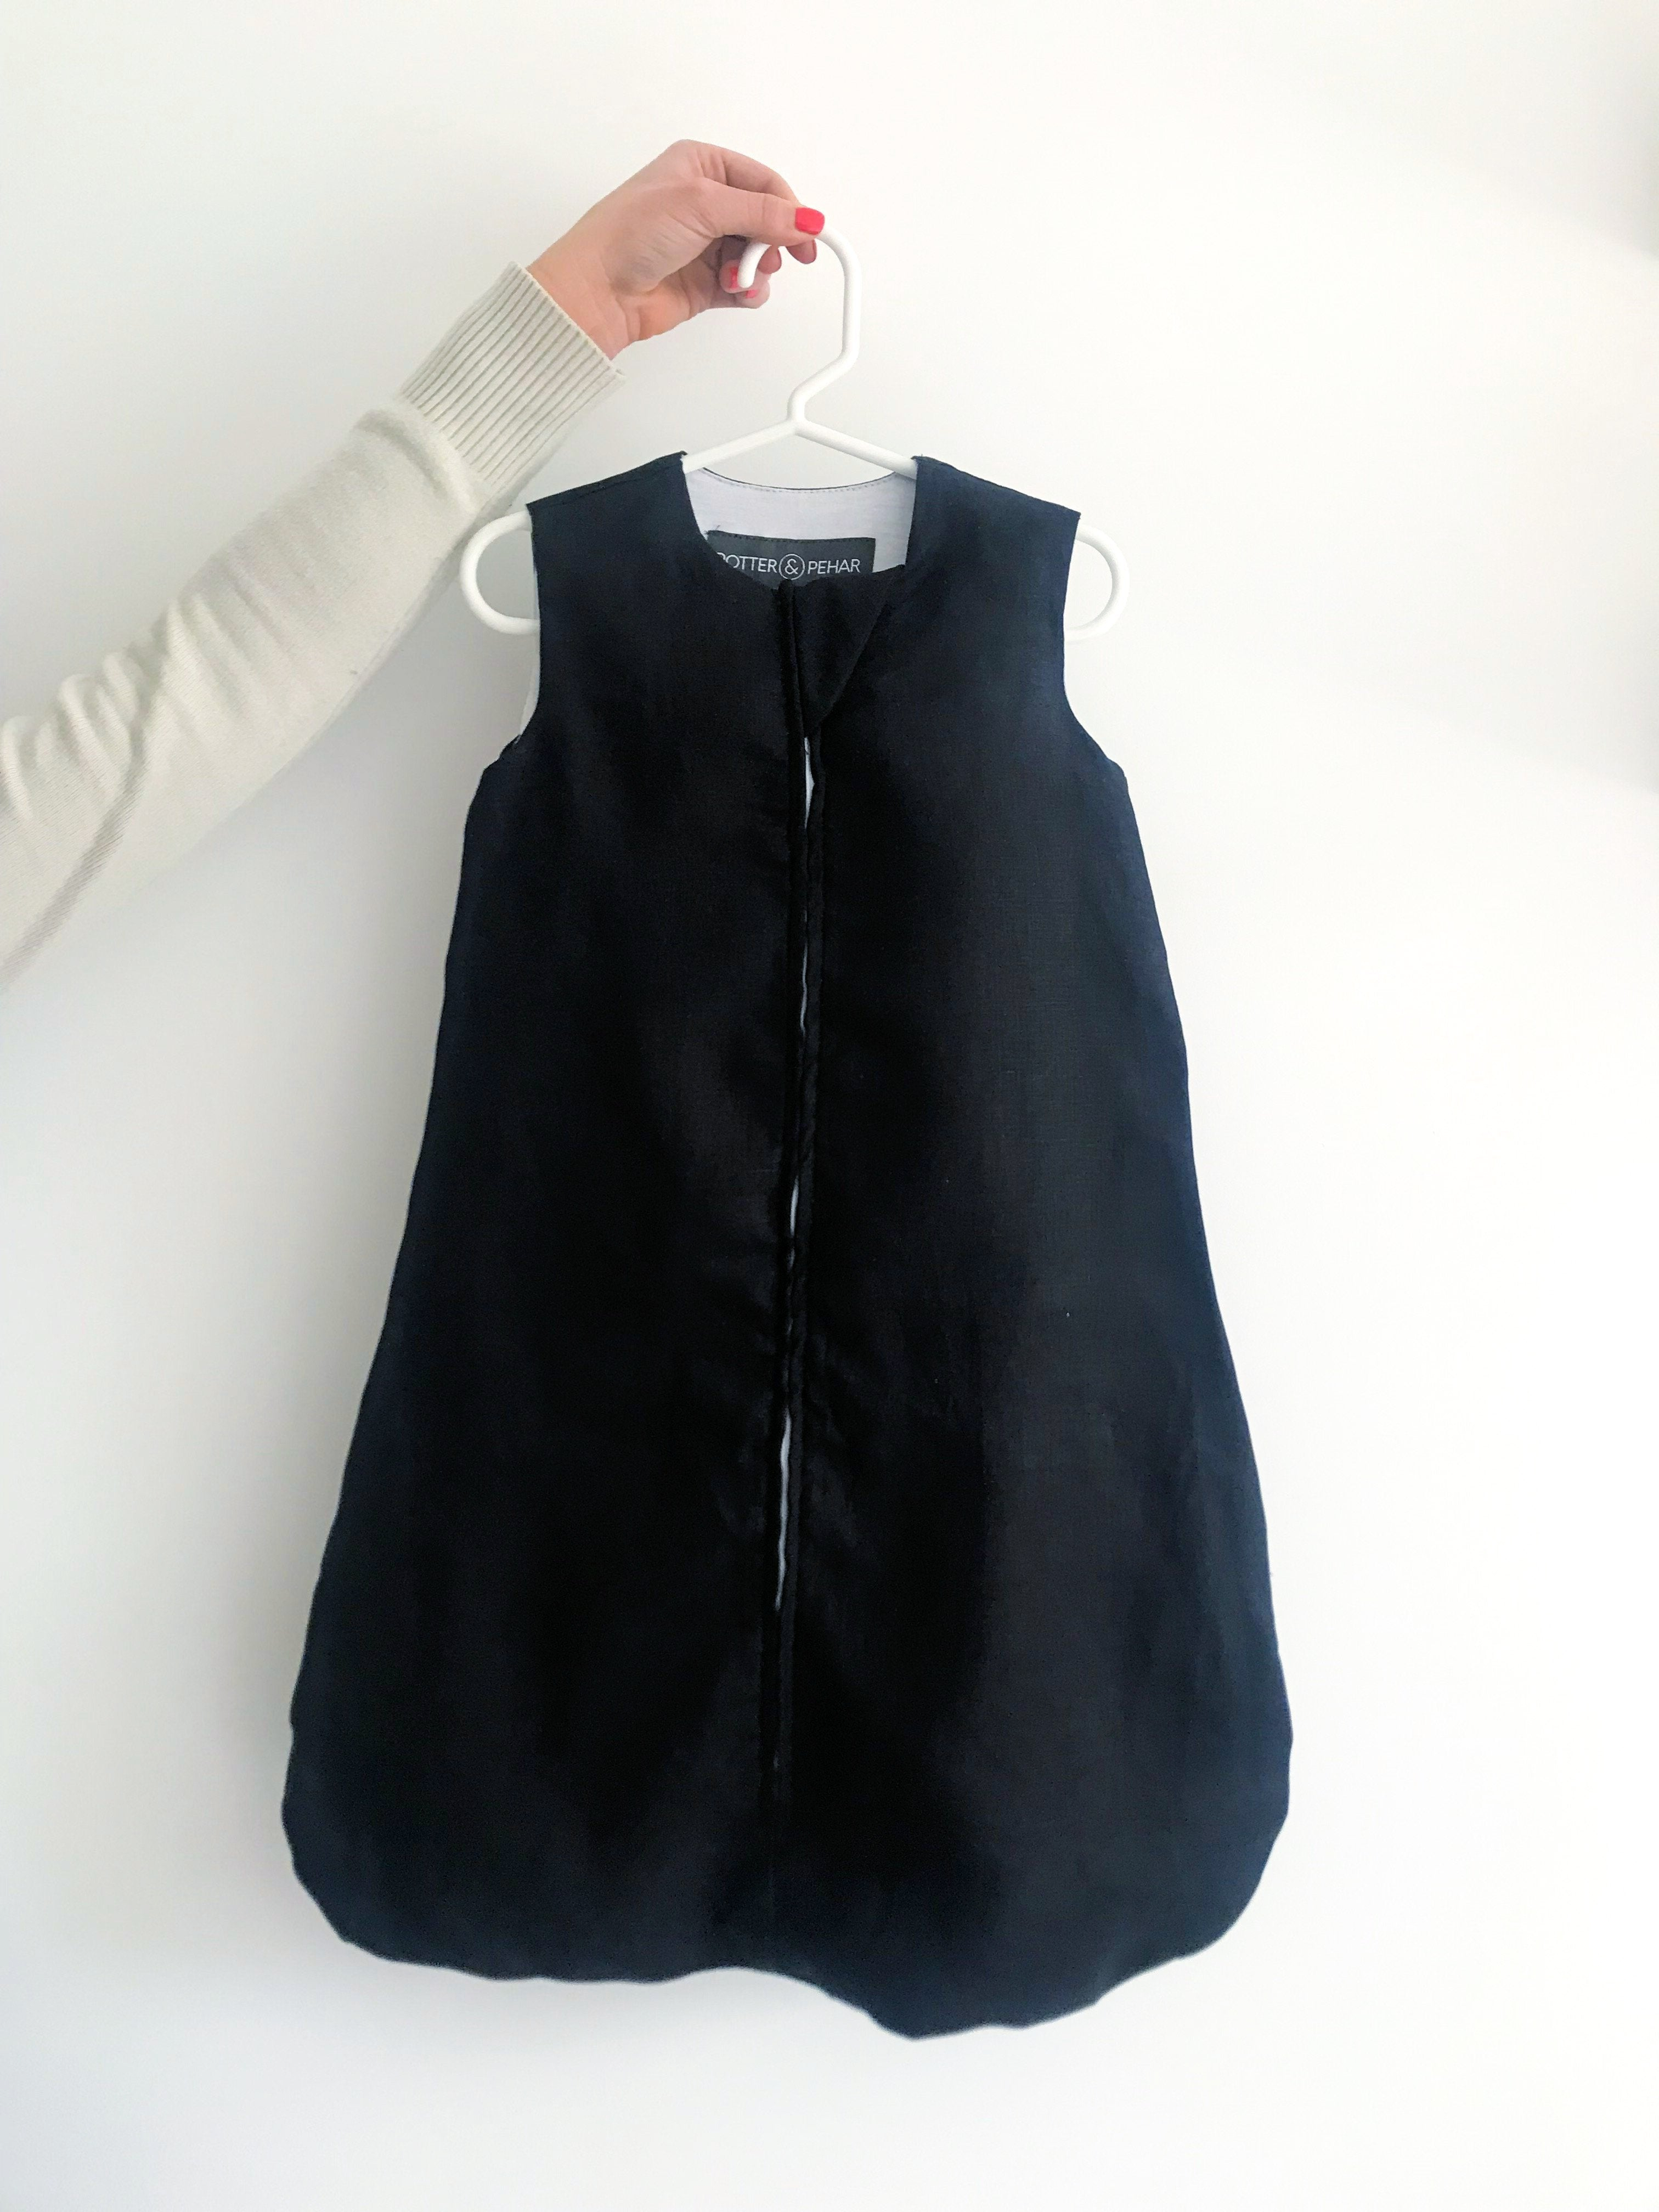 Black sleep sack | breathable baby sleep sack | newborn sleep sack  | linen and bamboo baby sleep sack